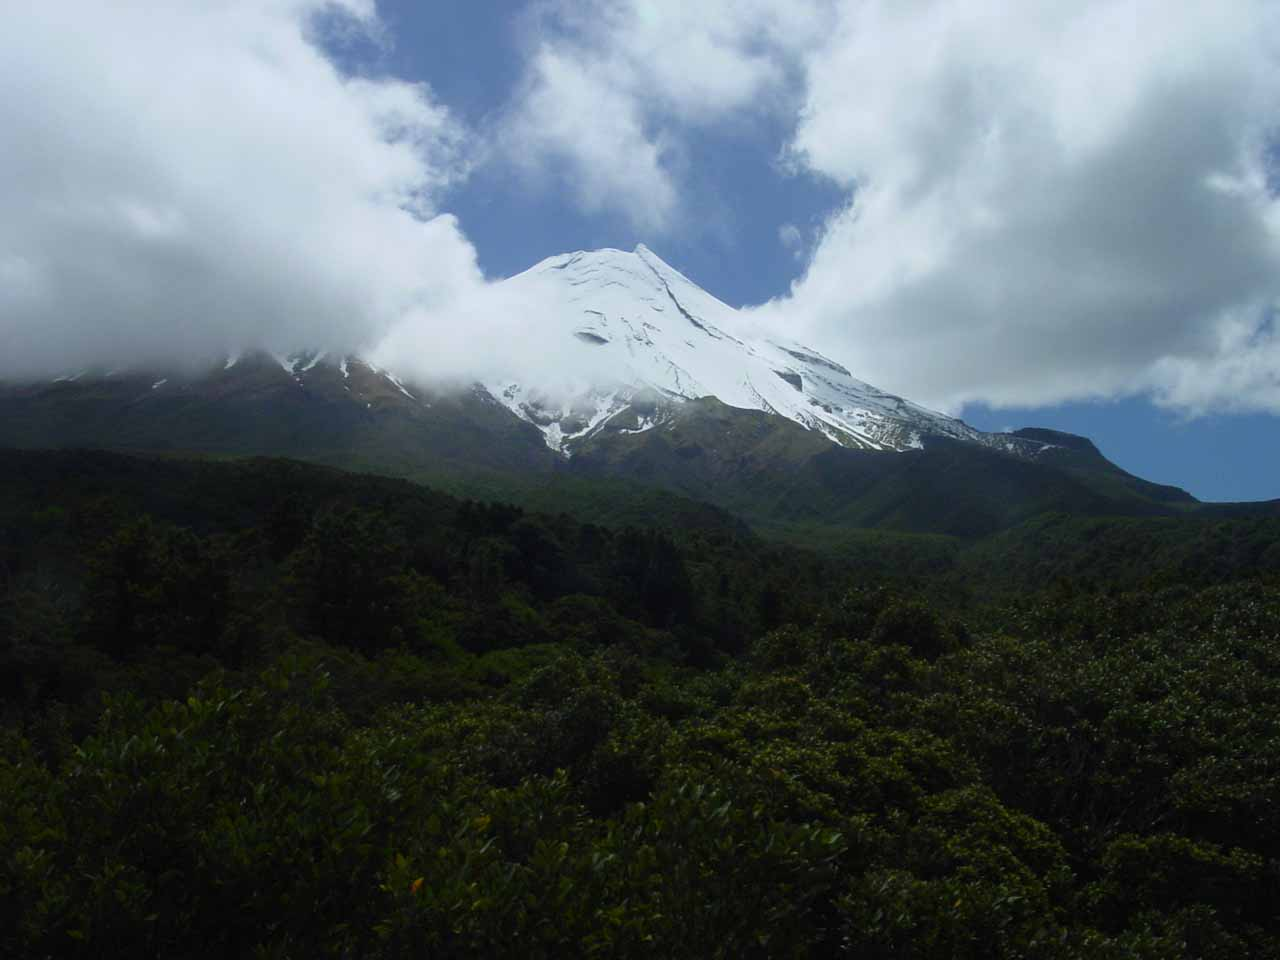 This was the view looking up at Mt Taranaki from the Dawson Falls Visitor Centre on the volcano's southeastern slopes